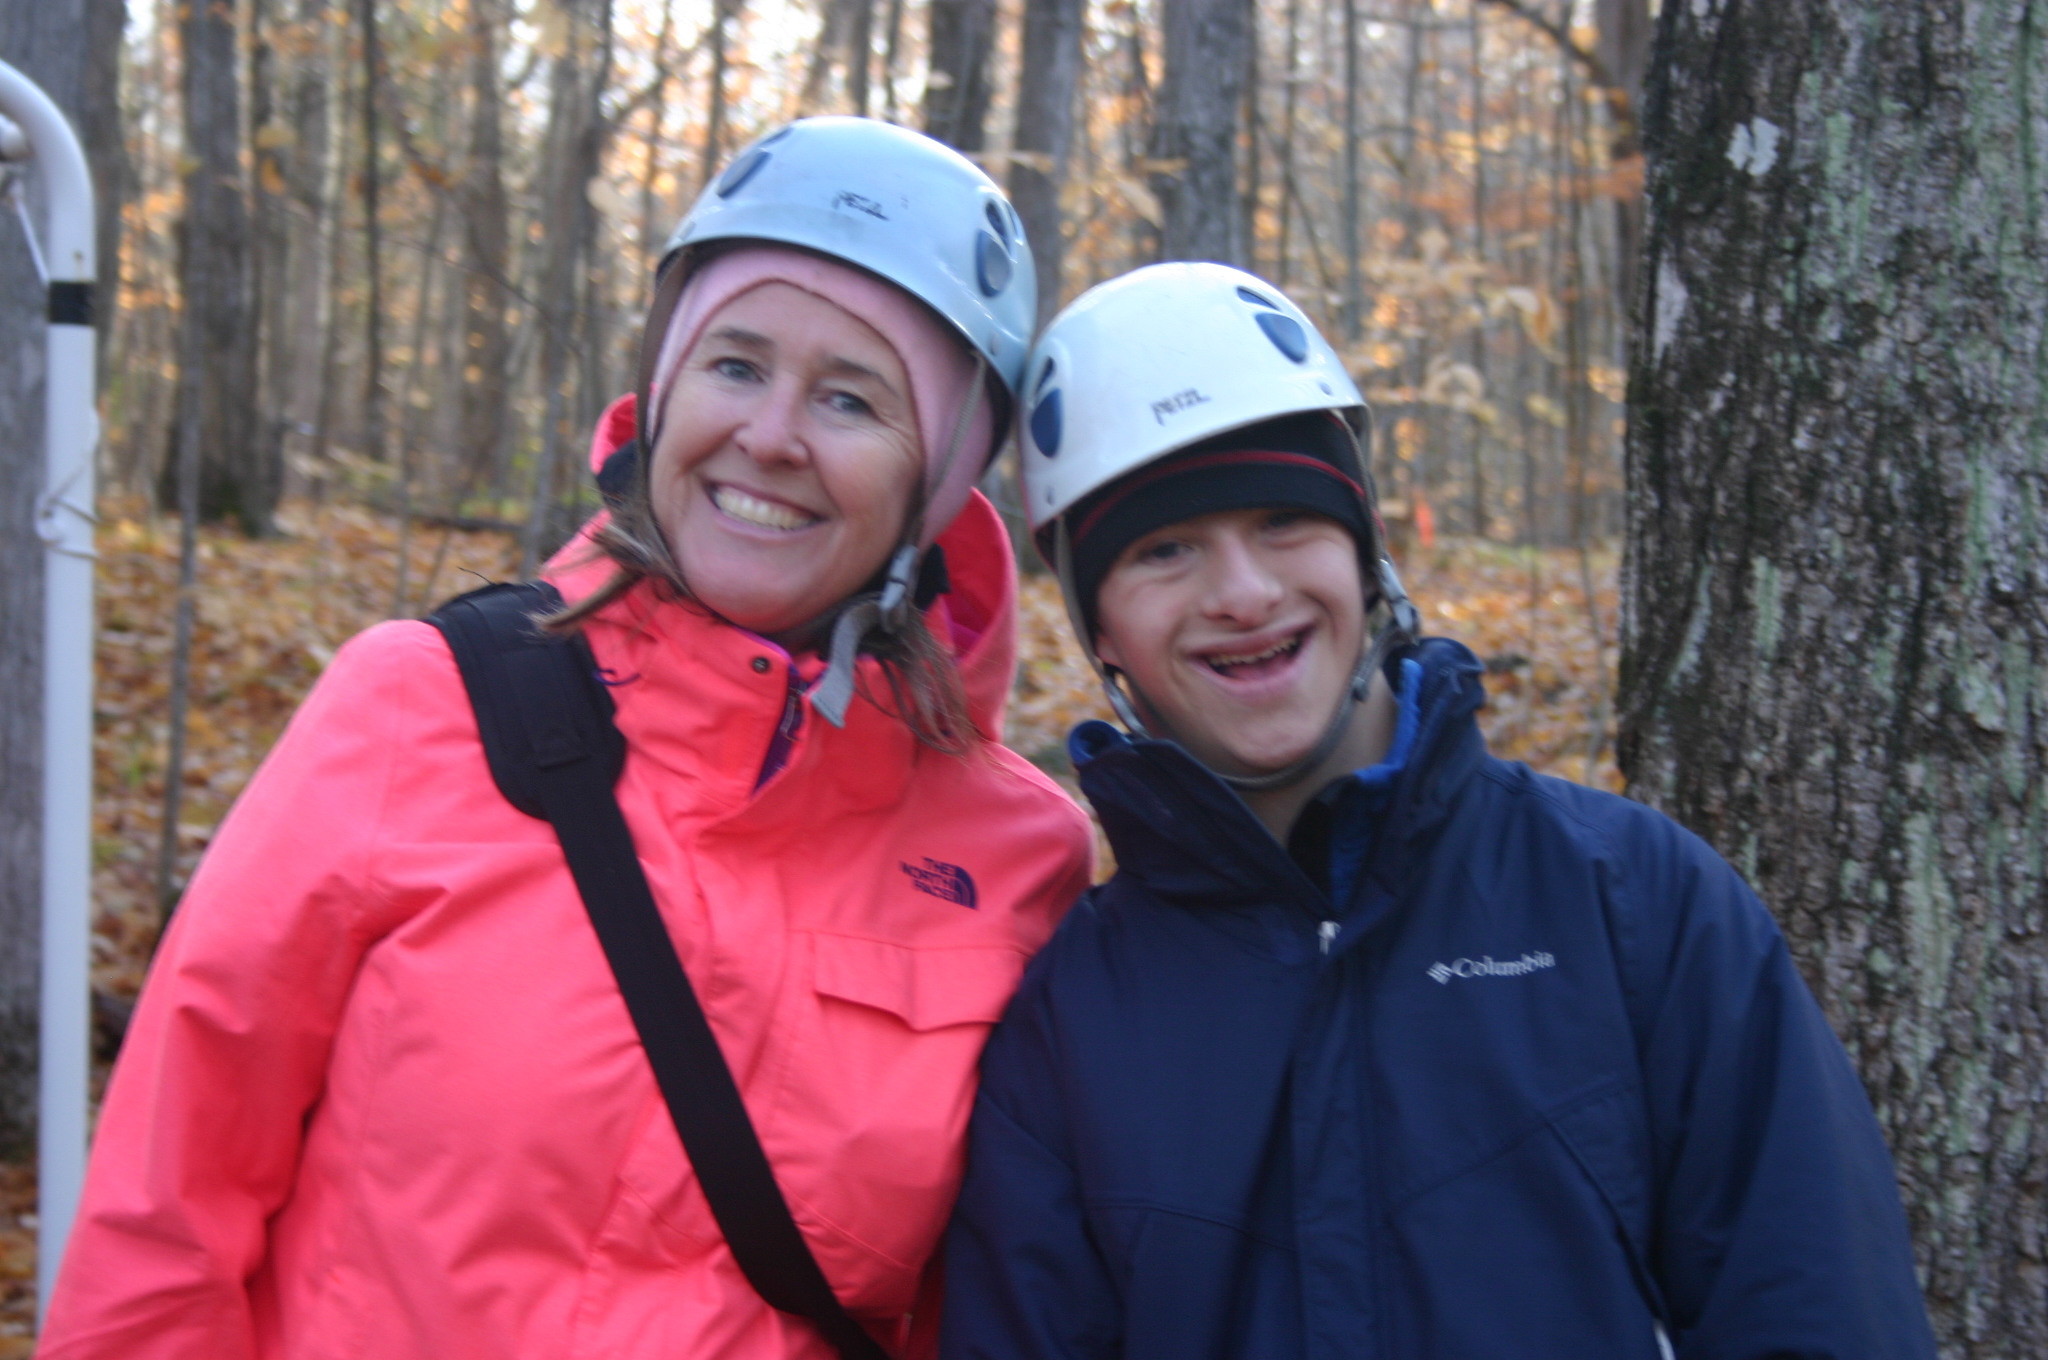 A woman and a younger man are standing together outside in Autumn. They are both wearing helmets and have their heads resting on eachothers and smiling at the camera.